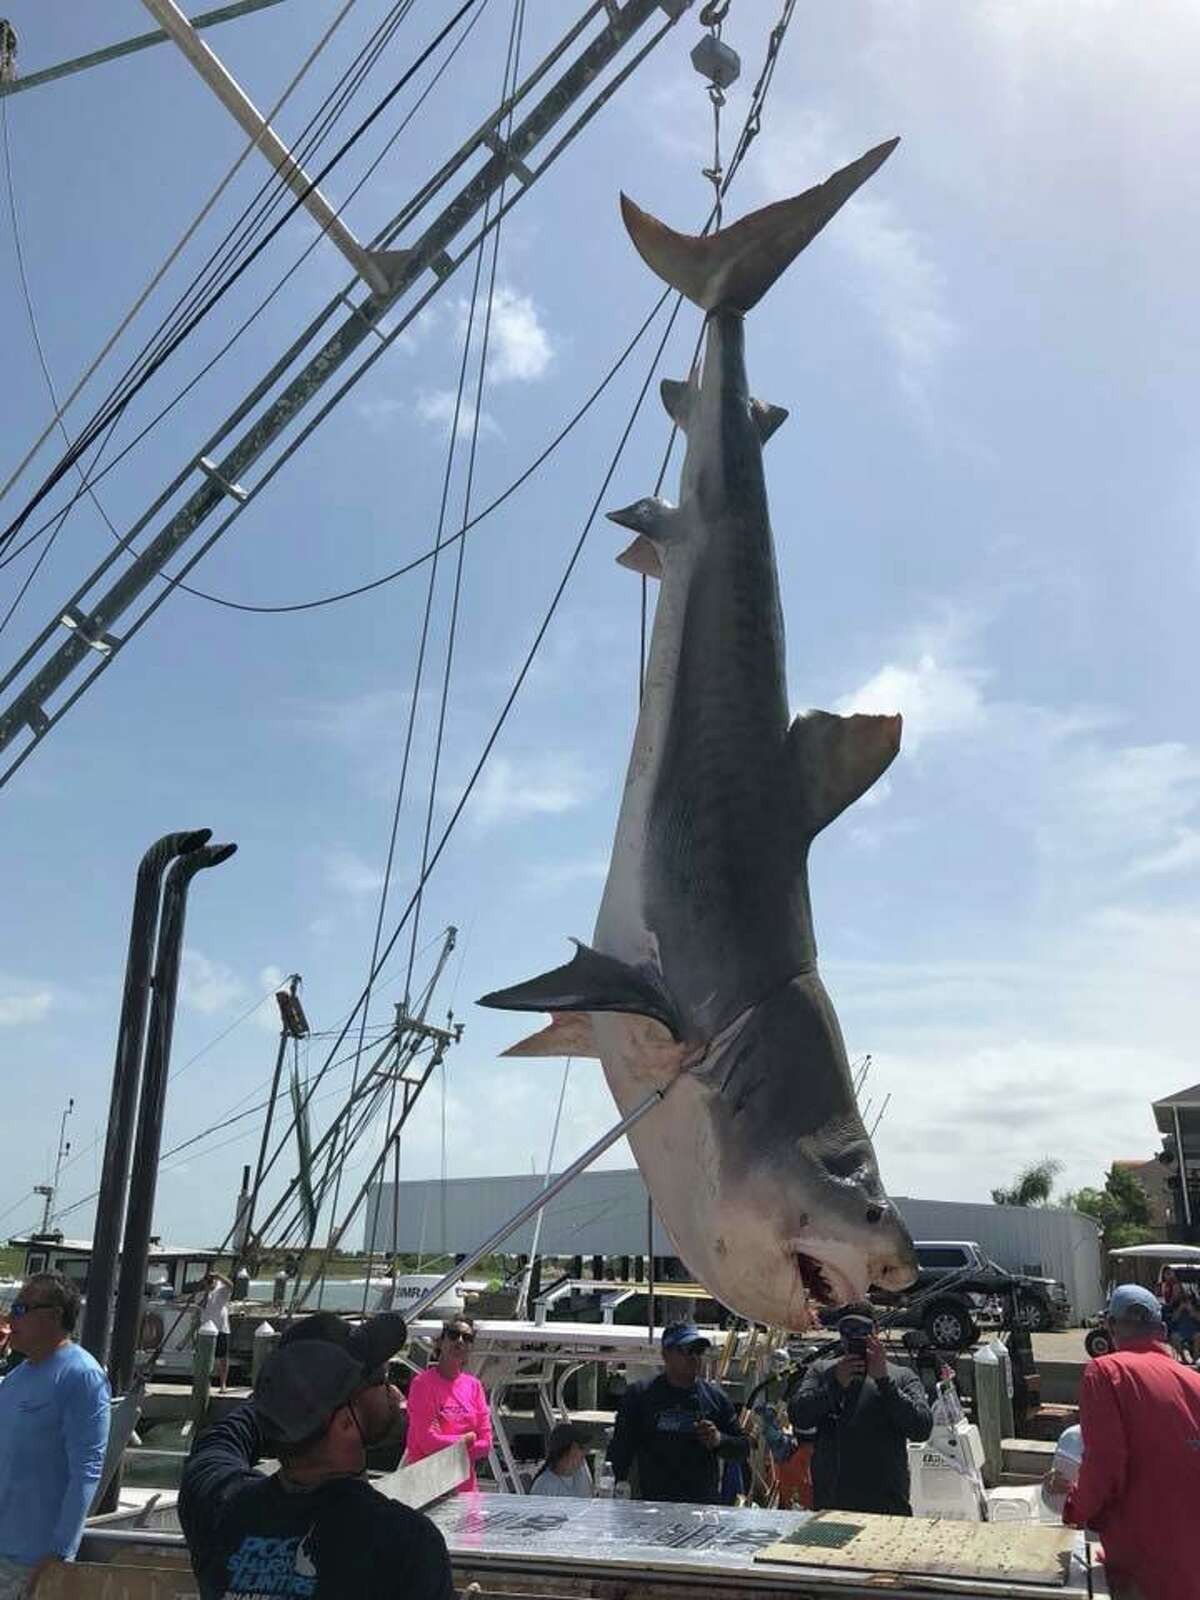 A team of anglers participating in a Port O'Connor fishing tournament reeled in a 12-foot tiger shark on Saturday, Aug. 4, 2018.